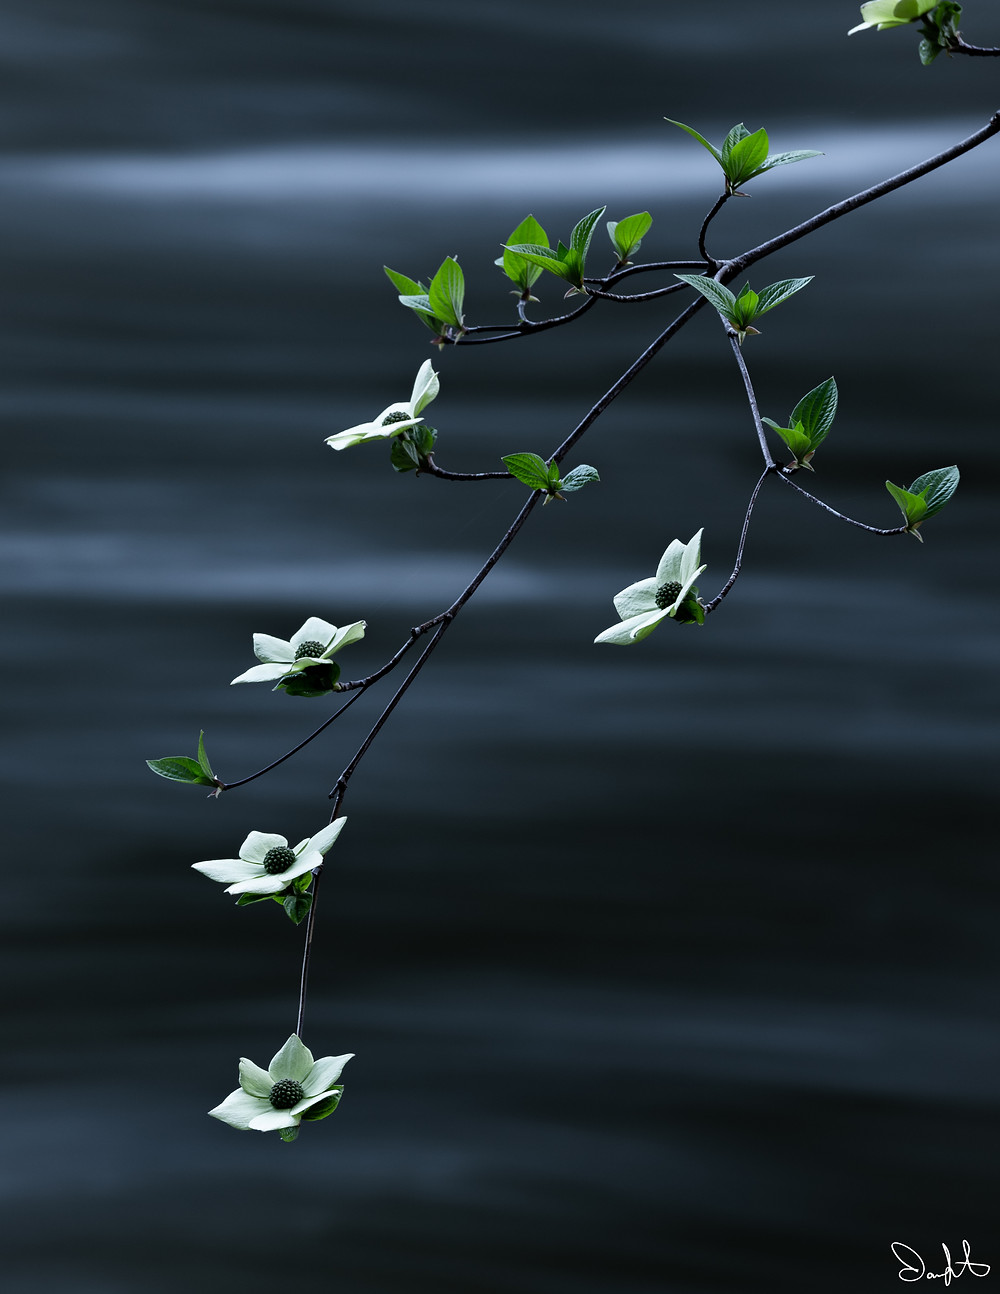 A dogwood bloom over the Merced River